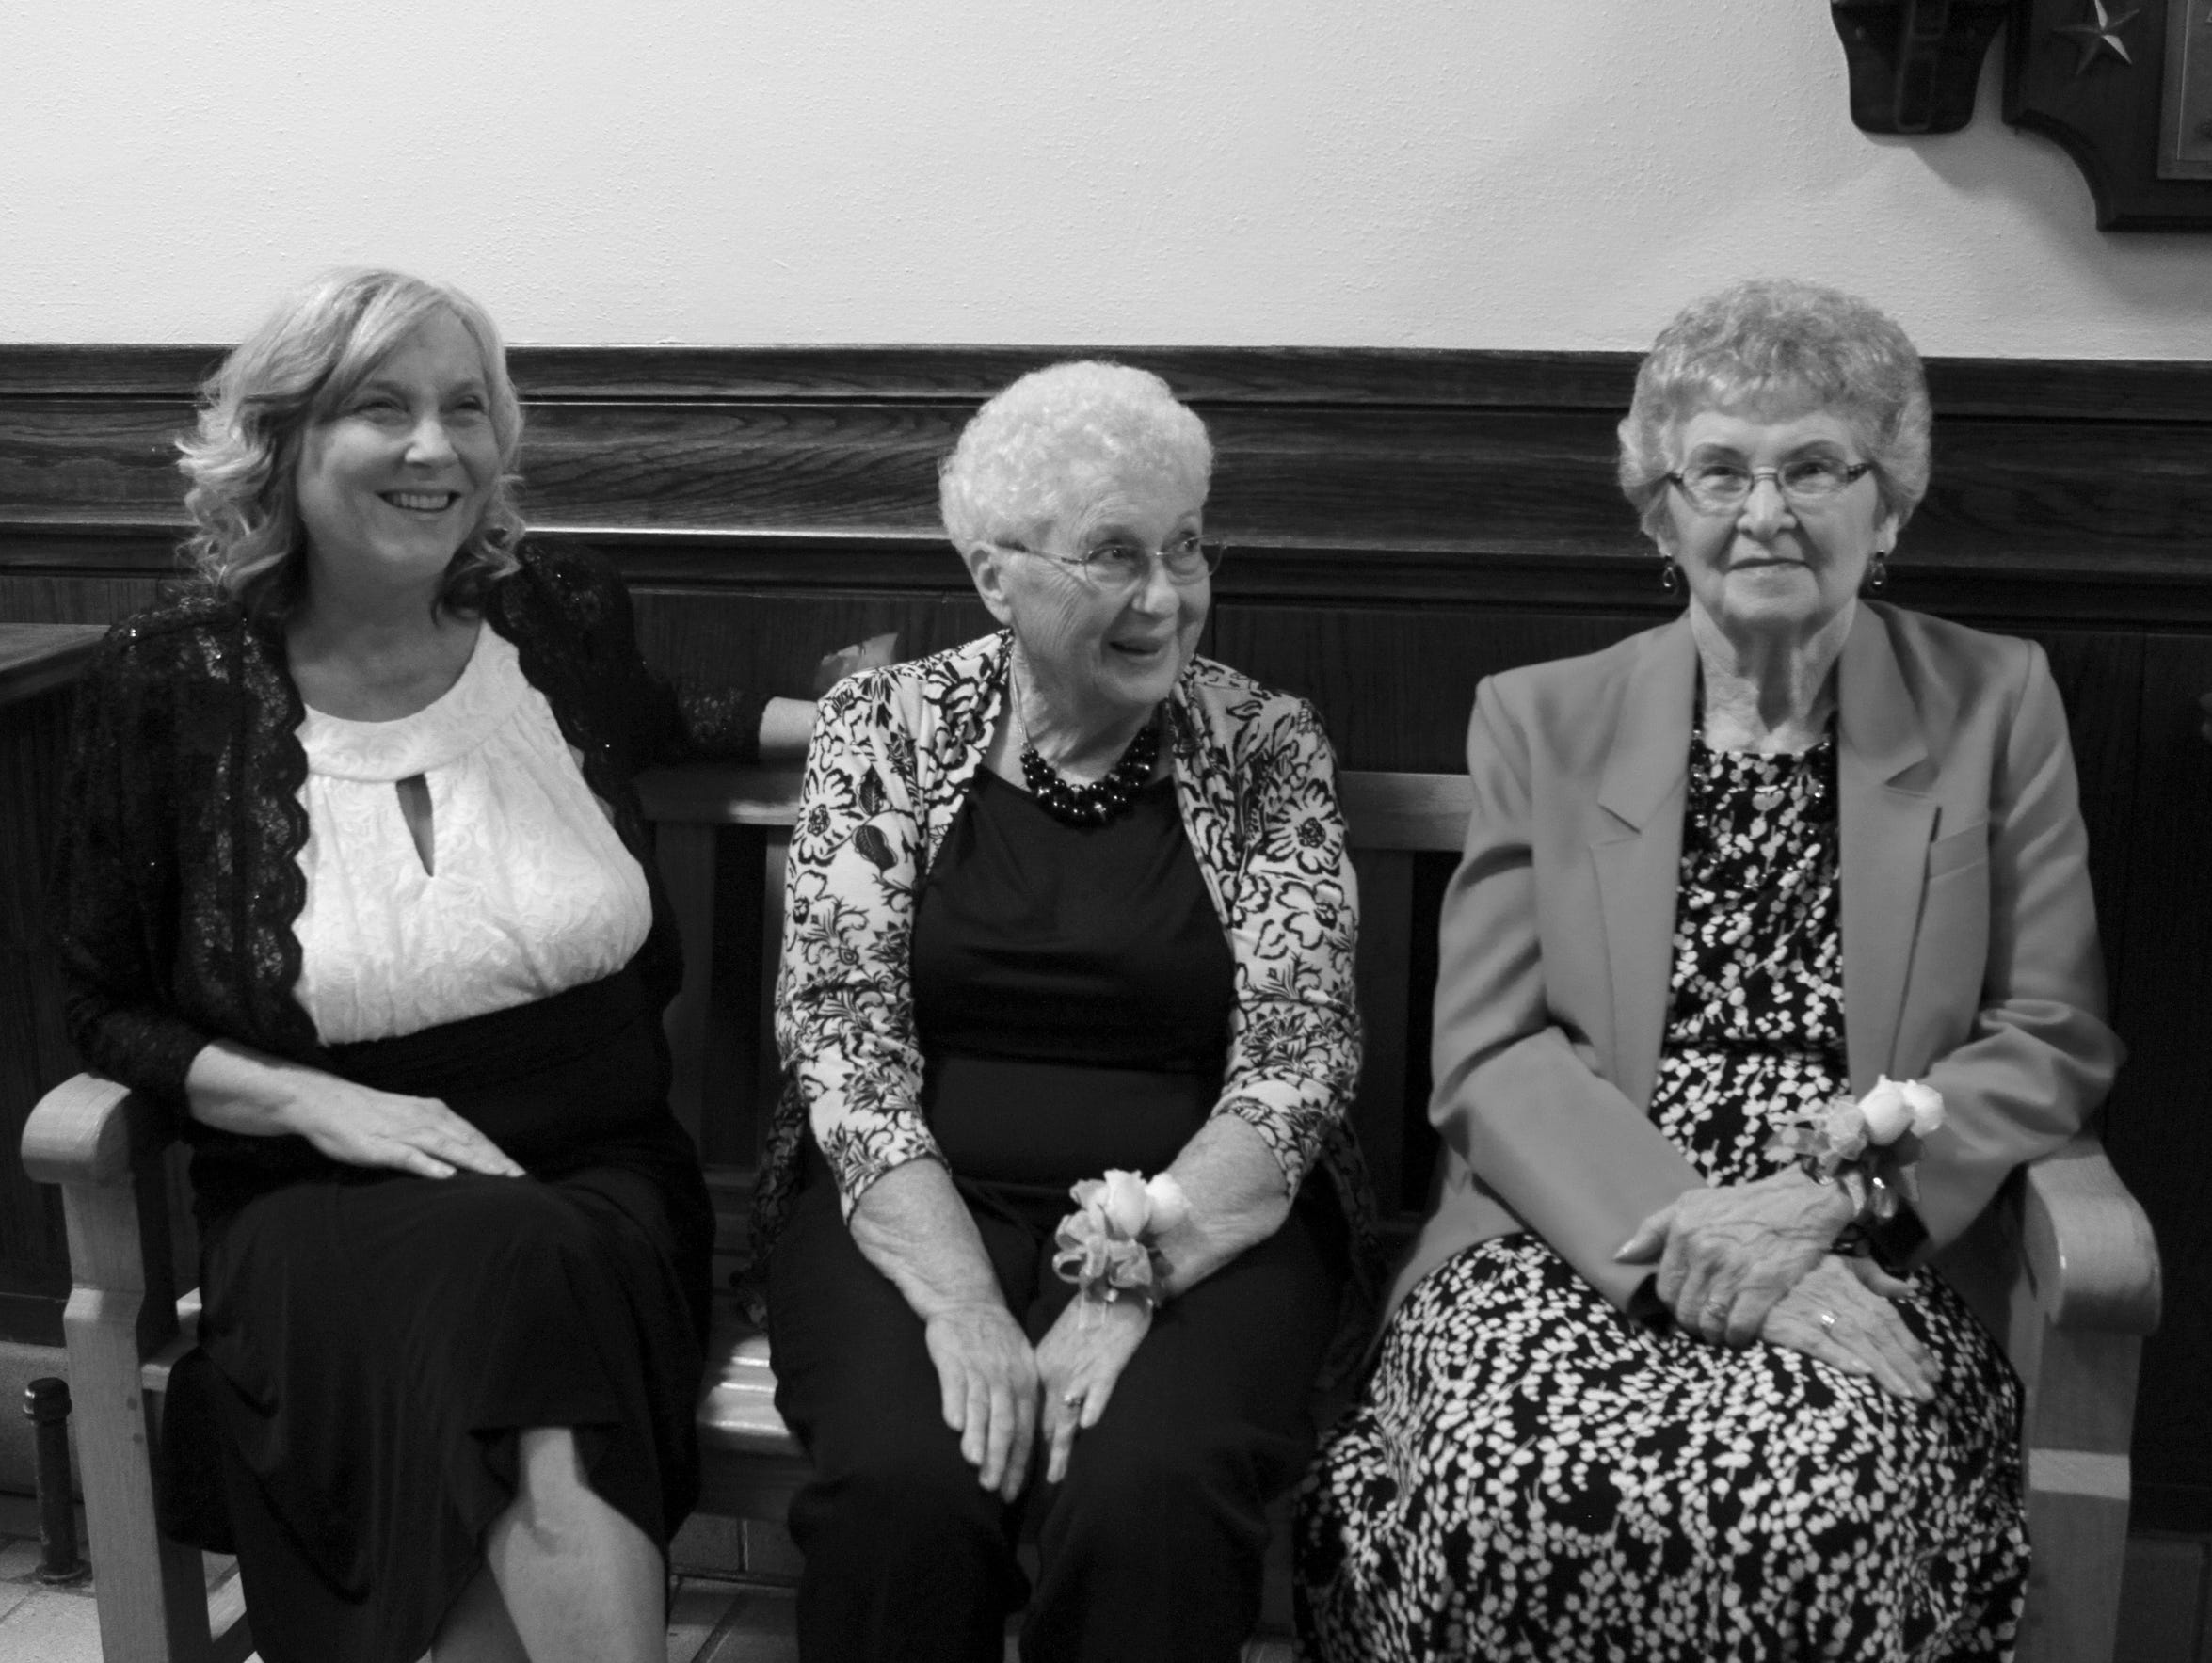 Aaron Young's mother, Angela Klier-Young, and grandmothers